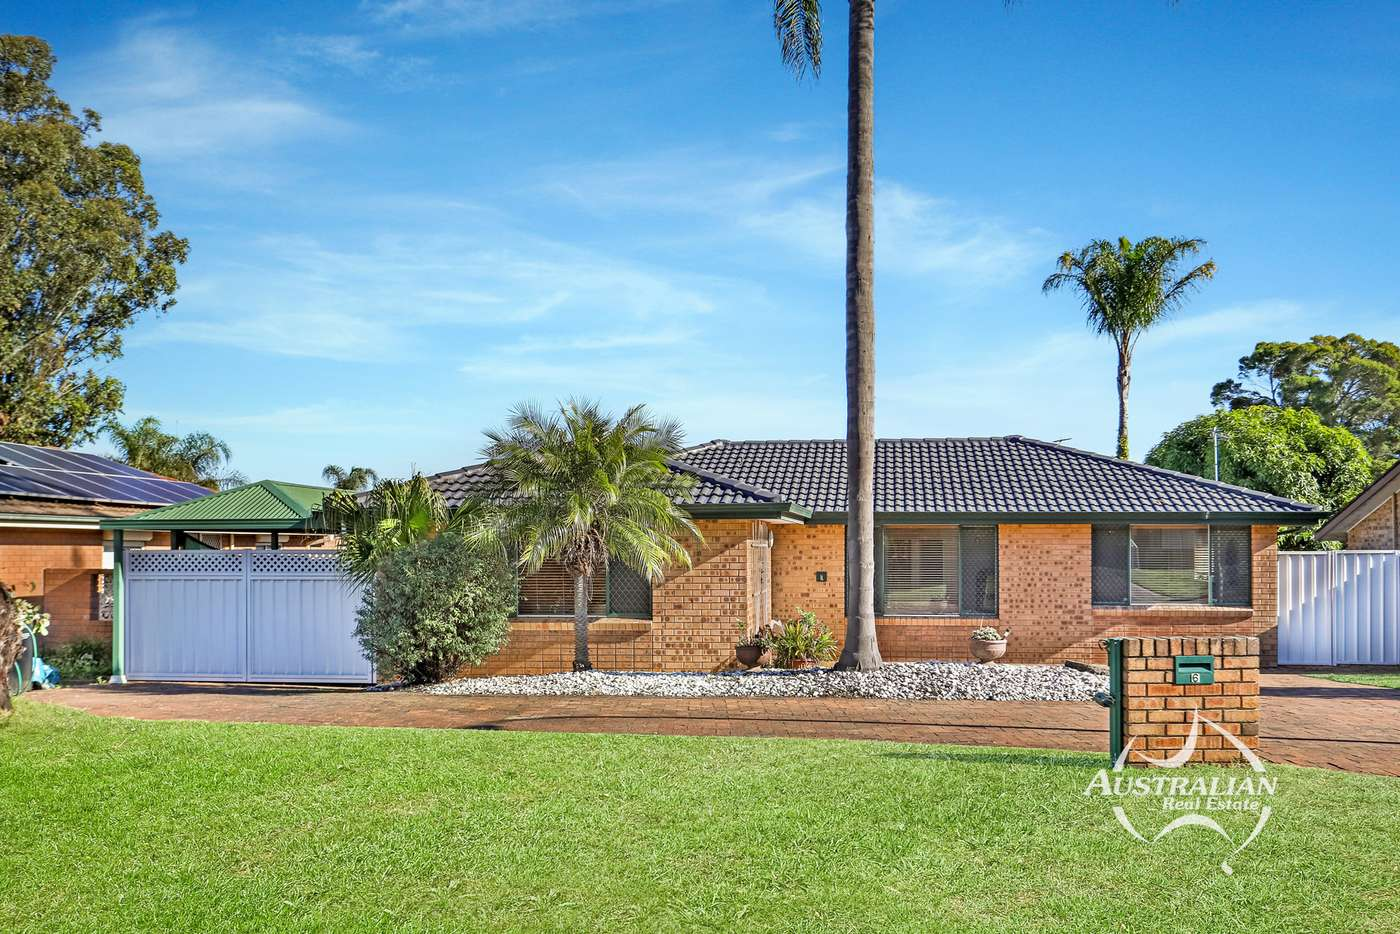 Main view of Homely house listing, 6 Olliver Crescent, St Clair NSW 2759